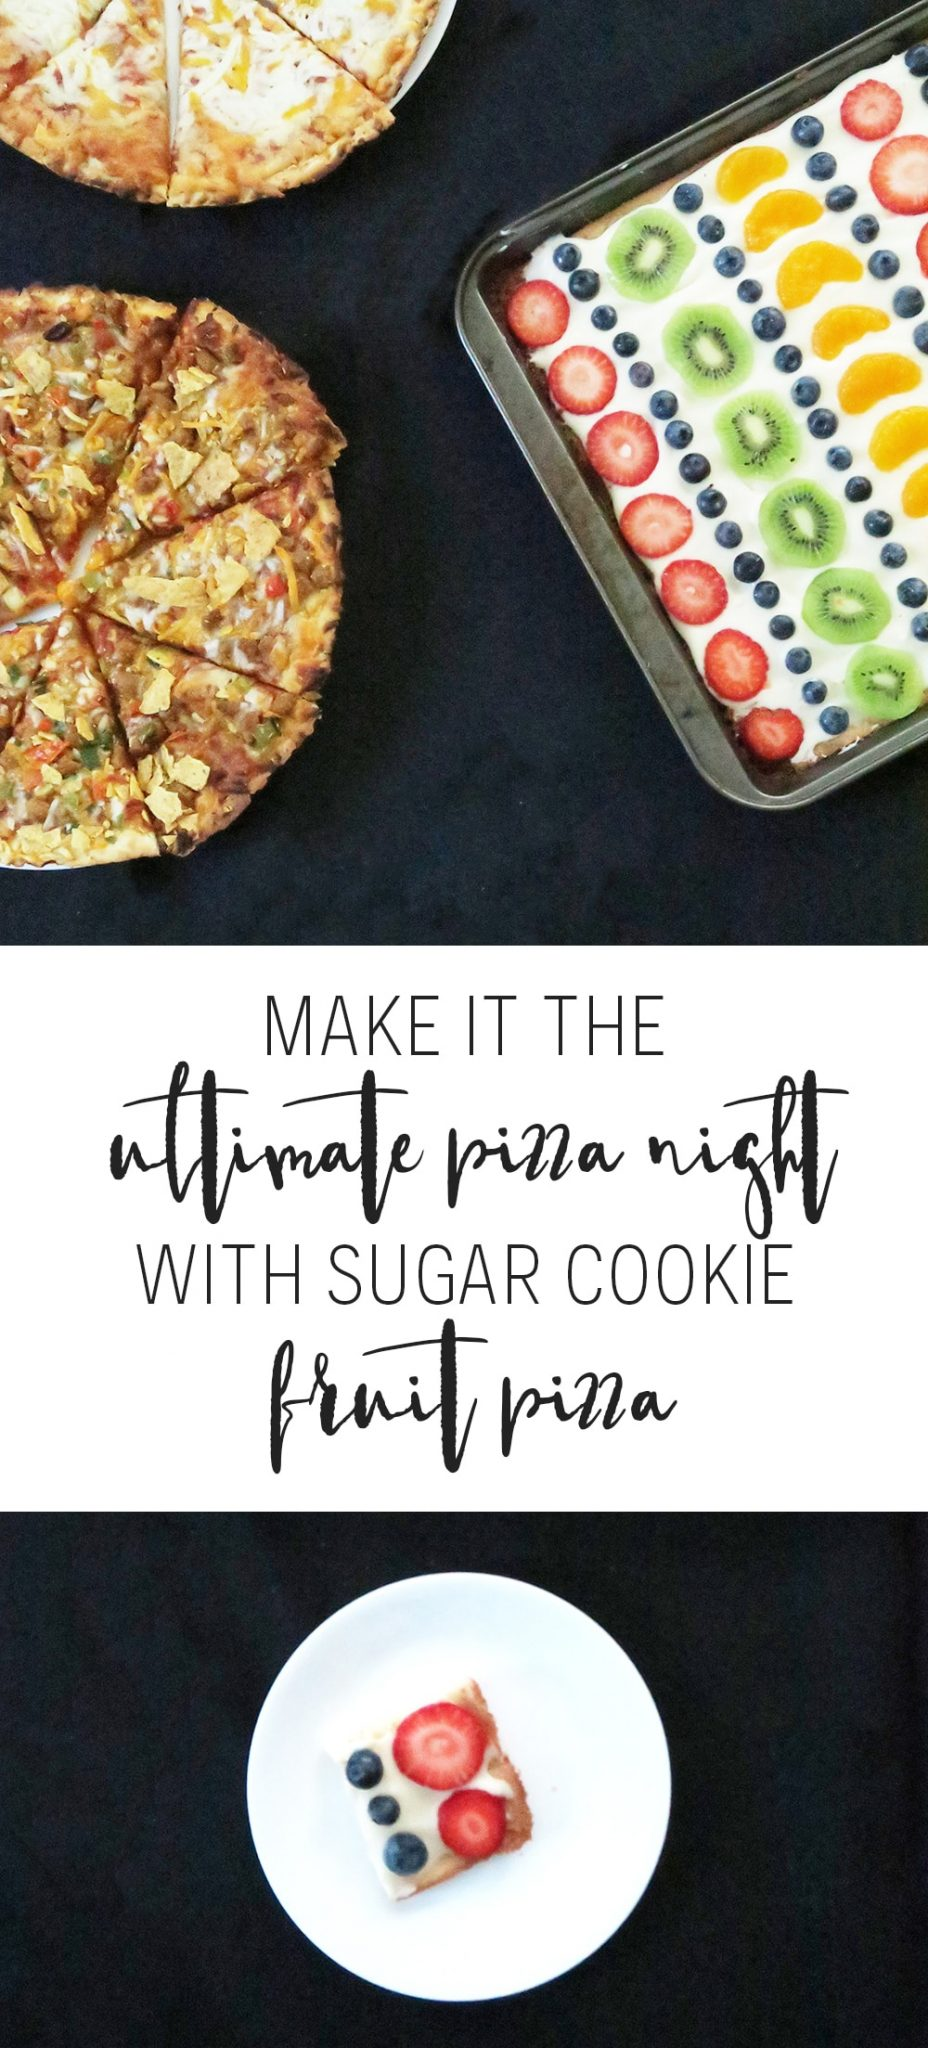 This Sugar Cookie Fruit Pizza recipe is a must-make for pizza night! It'll feed a crowd and it's super easy. This is a dessert you won't want to miss!